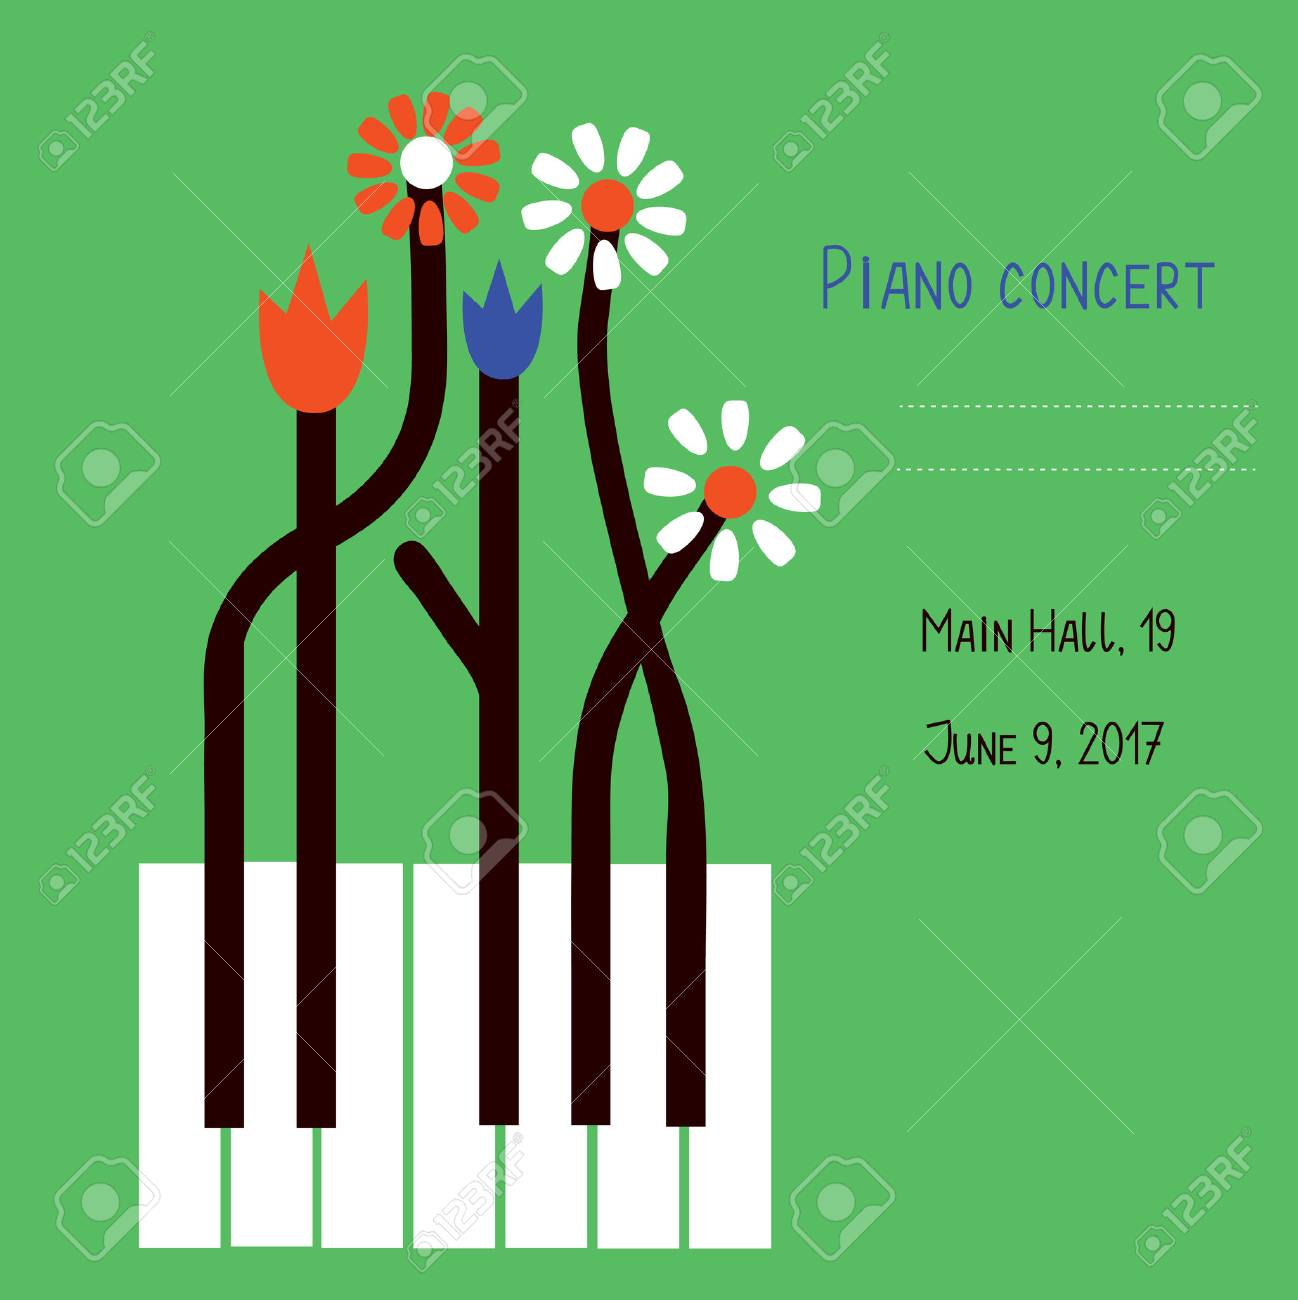 Piano concert design of banner with keys and flowers - vector graphic illustration - 72918692